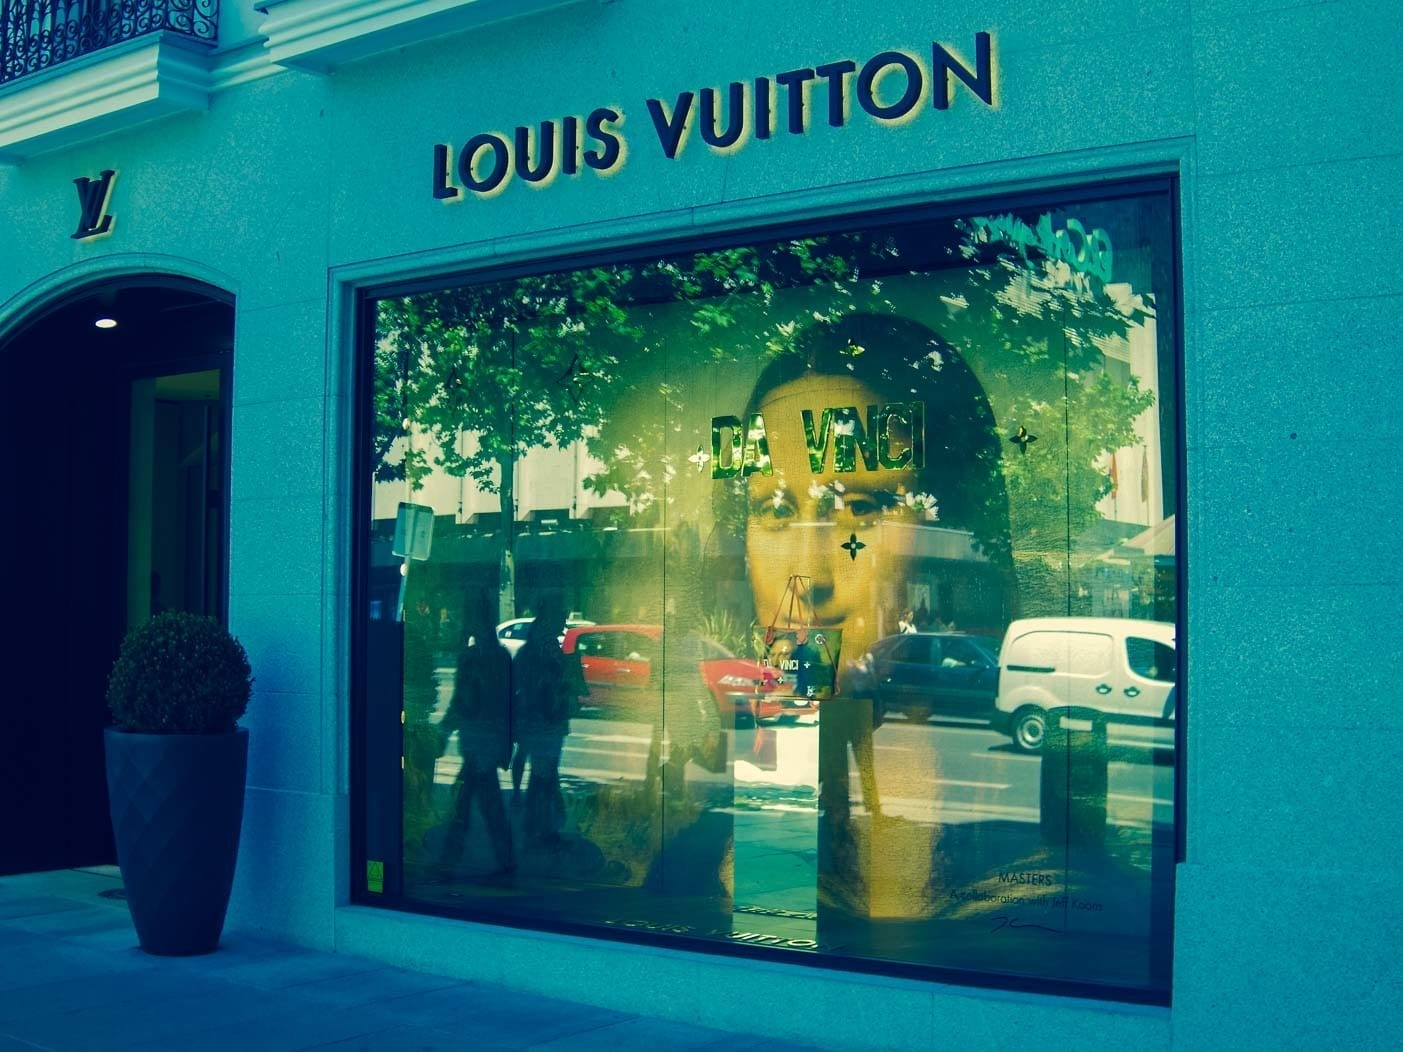 Louis Vuitton luxury shopping in Madrid